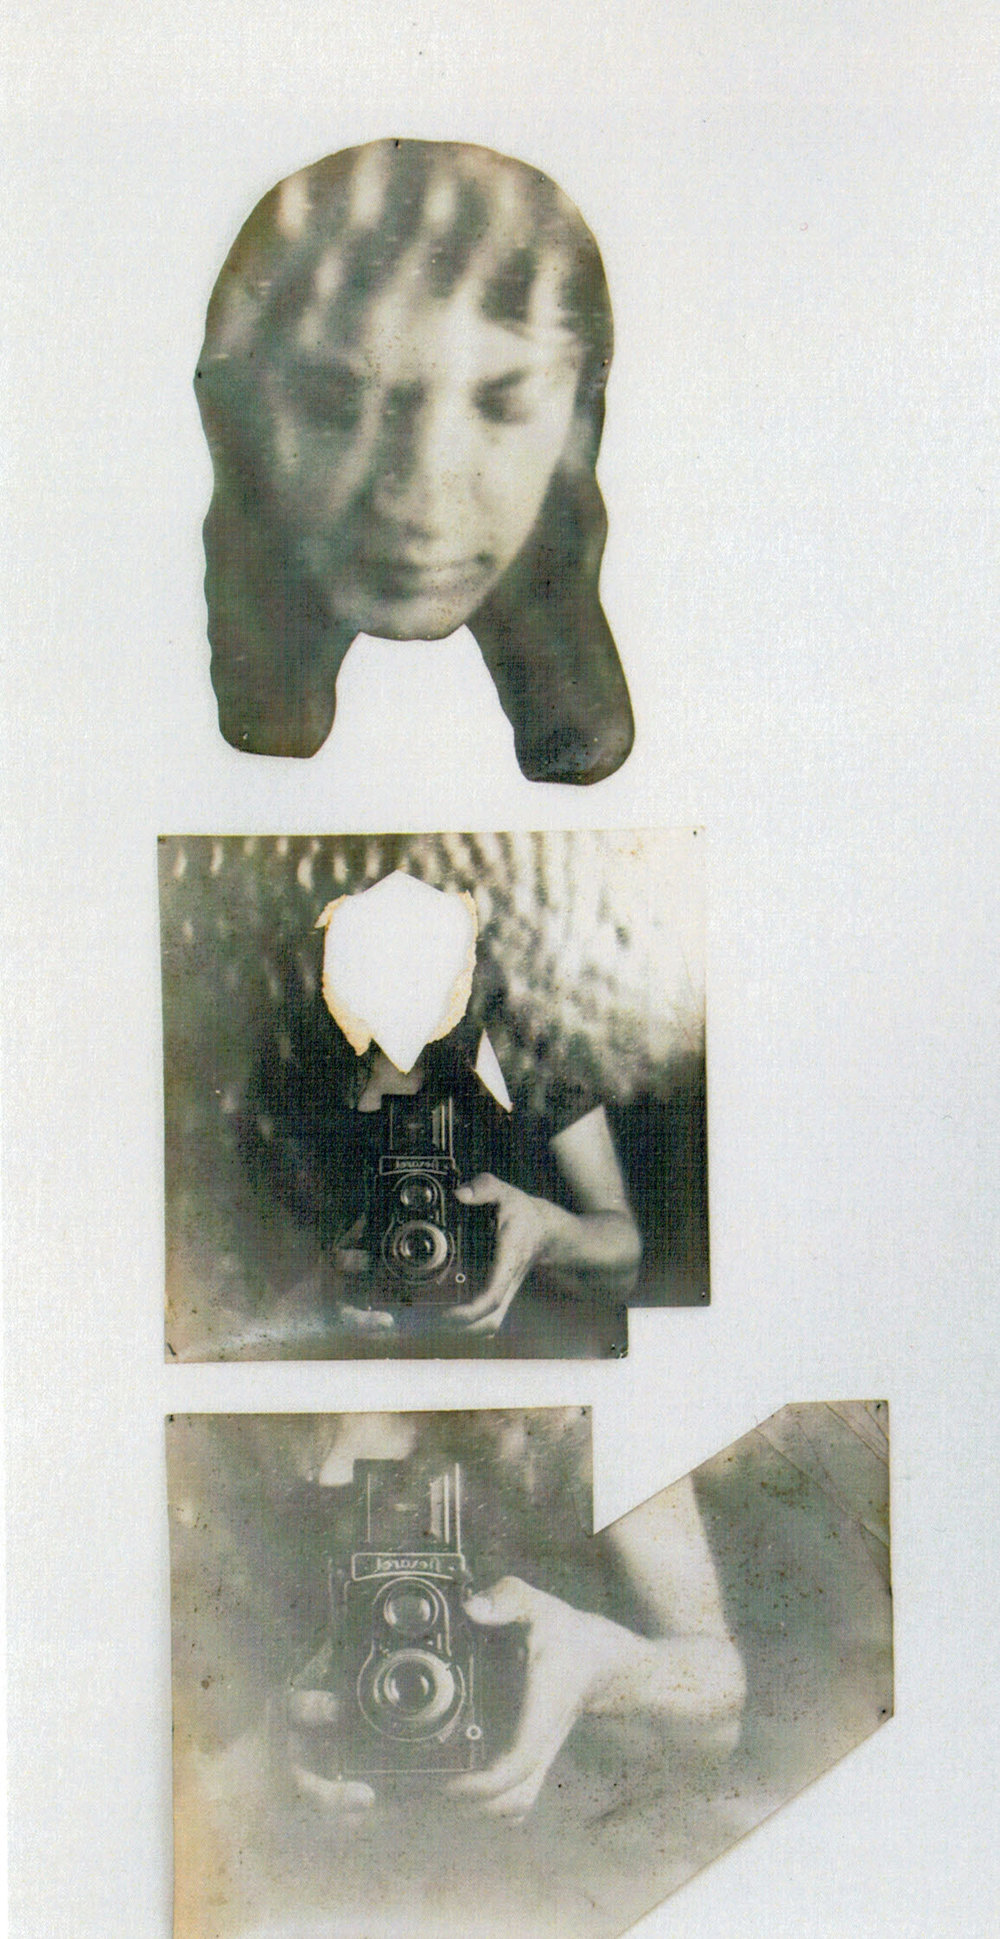 SELFPORTRAIT (1973) black and white photograph on cardboard